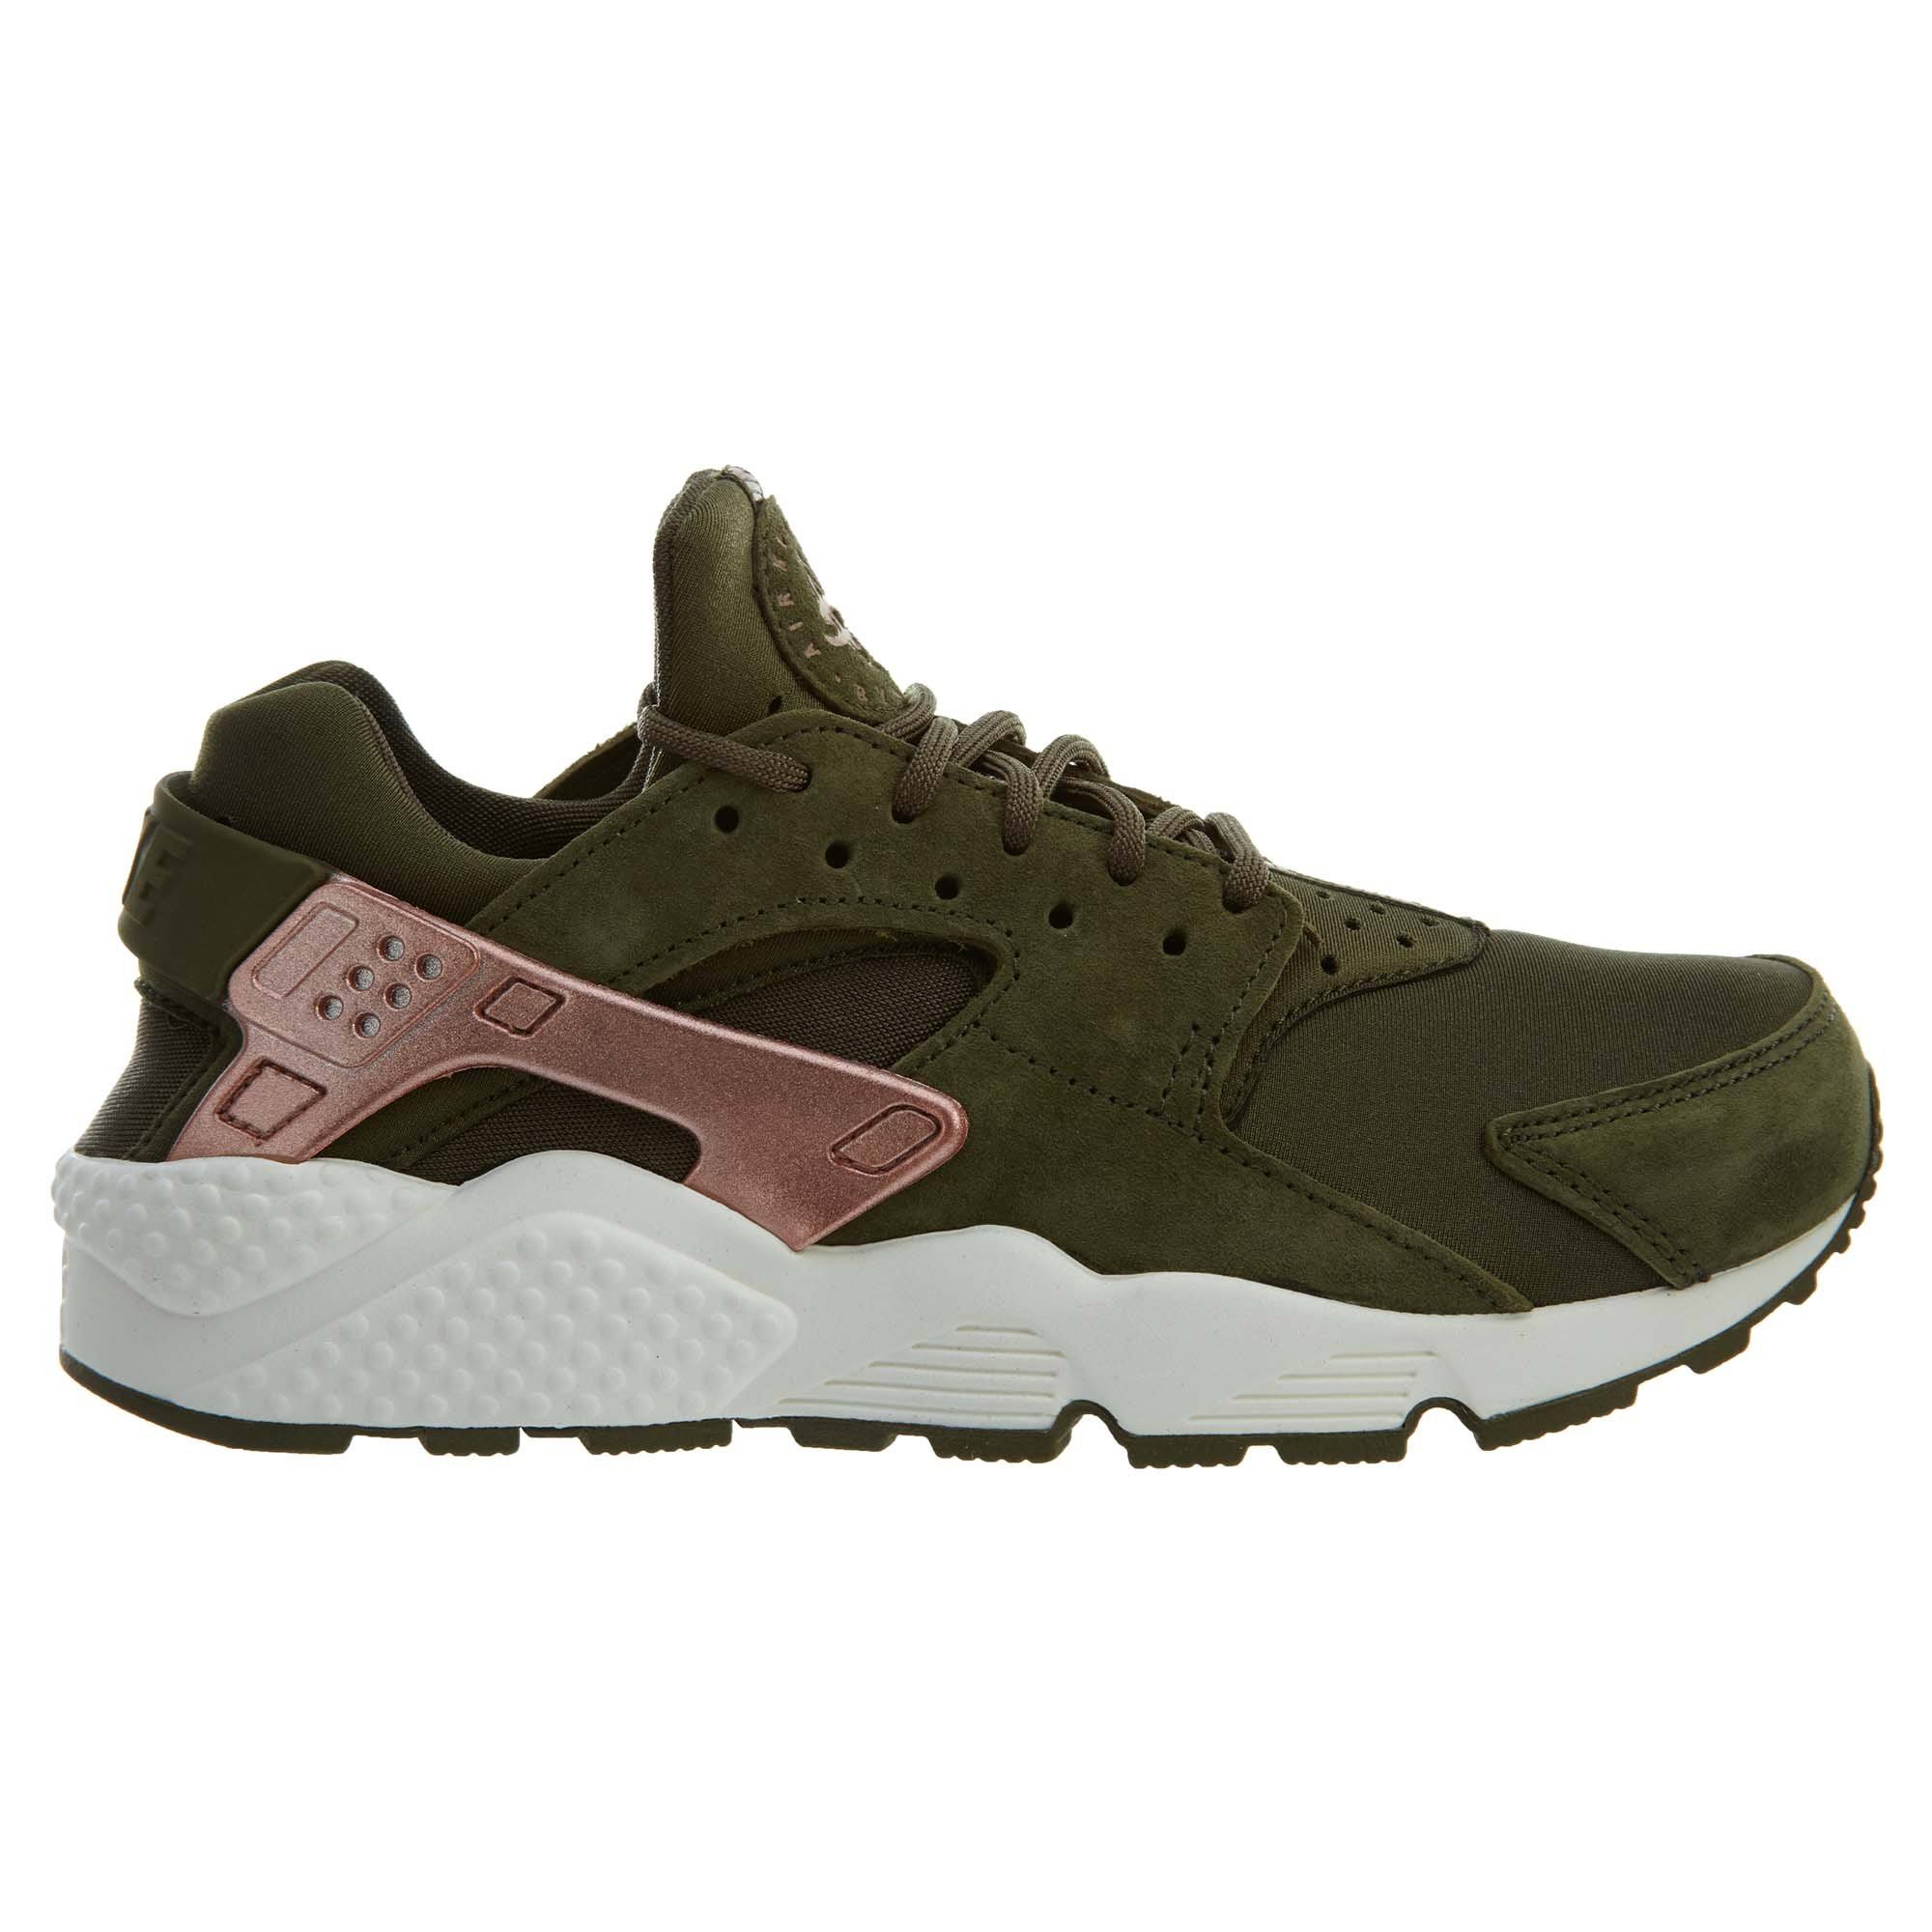 Womens Huarache metallic Nike Canvas Olive Gold Rose rust At5700 Run Pink Air Style q4q5tOx